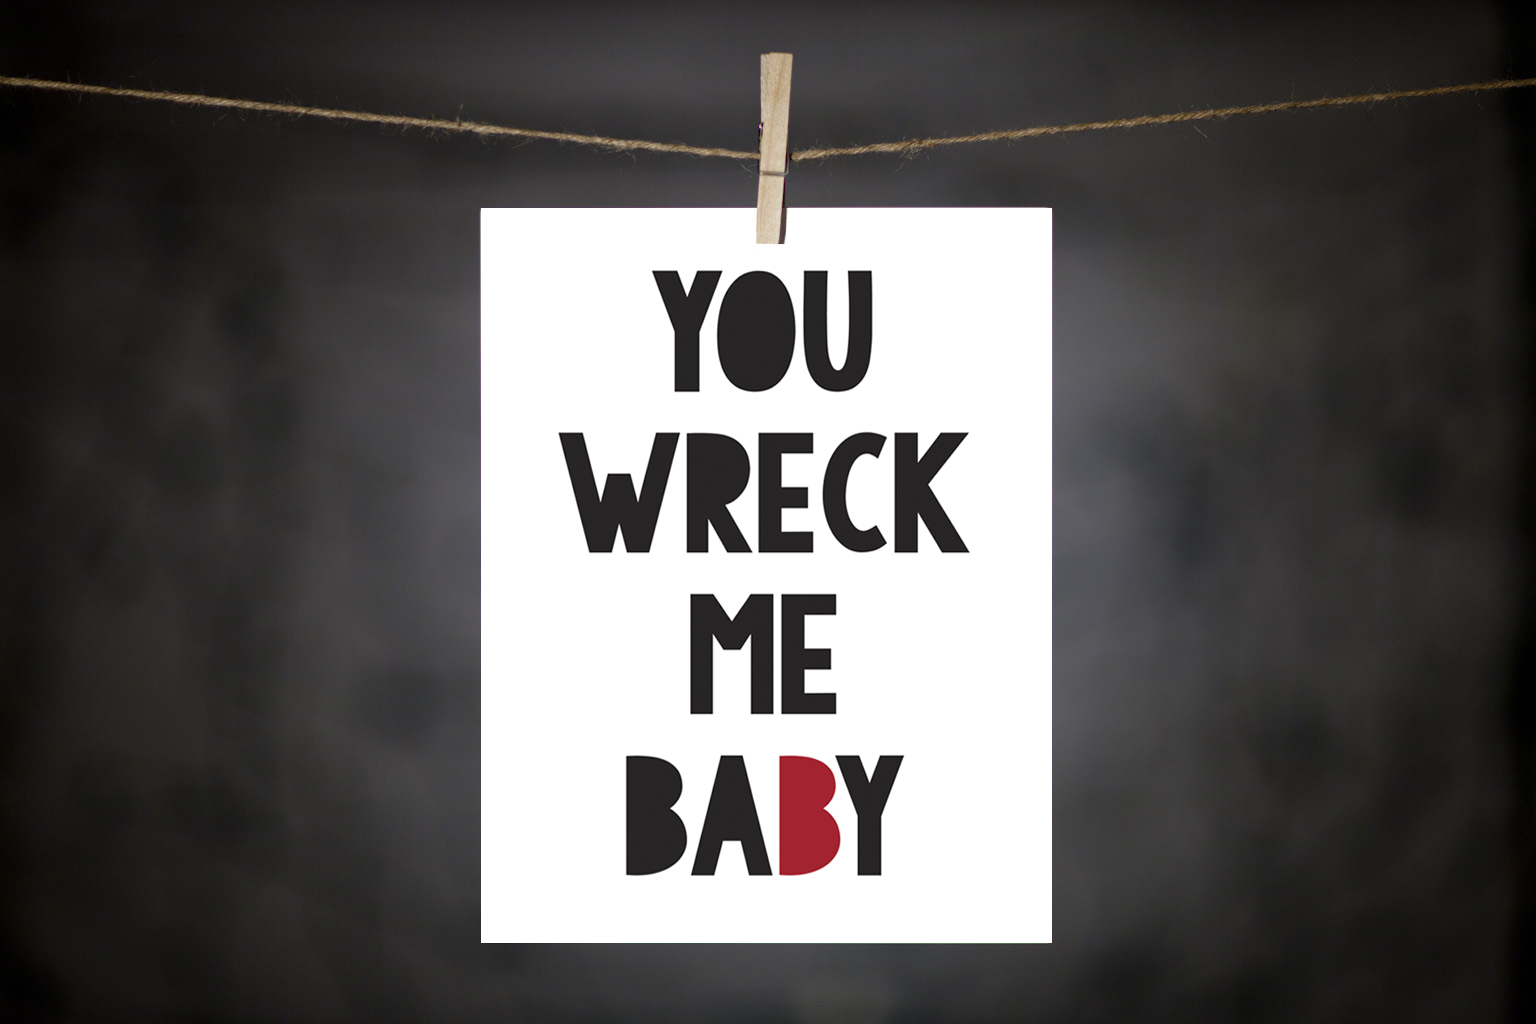 pURCHASE hEREyou wreck me, baby... a feeling we've all experienced at one time or another, right?this is an 8x10 DoodleGirl Designs original.  it comes packaged in a cellophane sleeve with cardboard backing.  crafted + printed in colorado, usa.